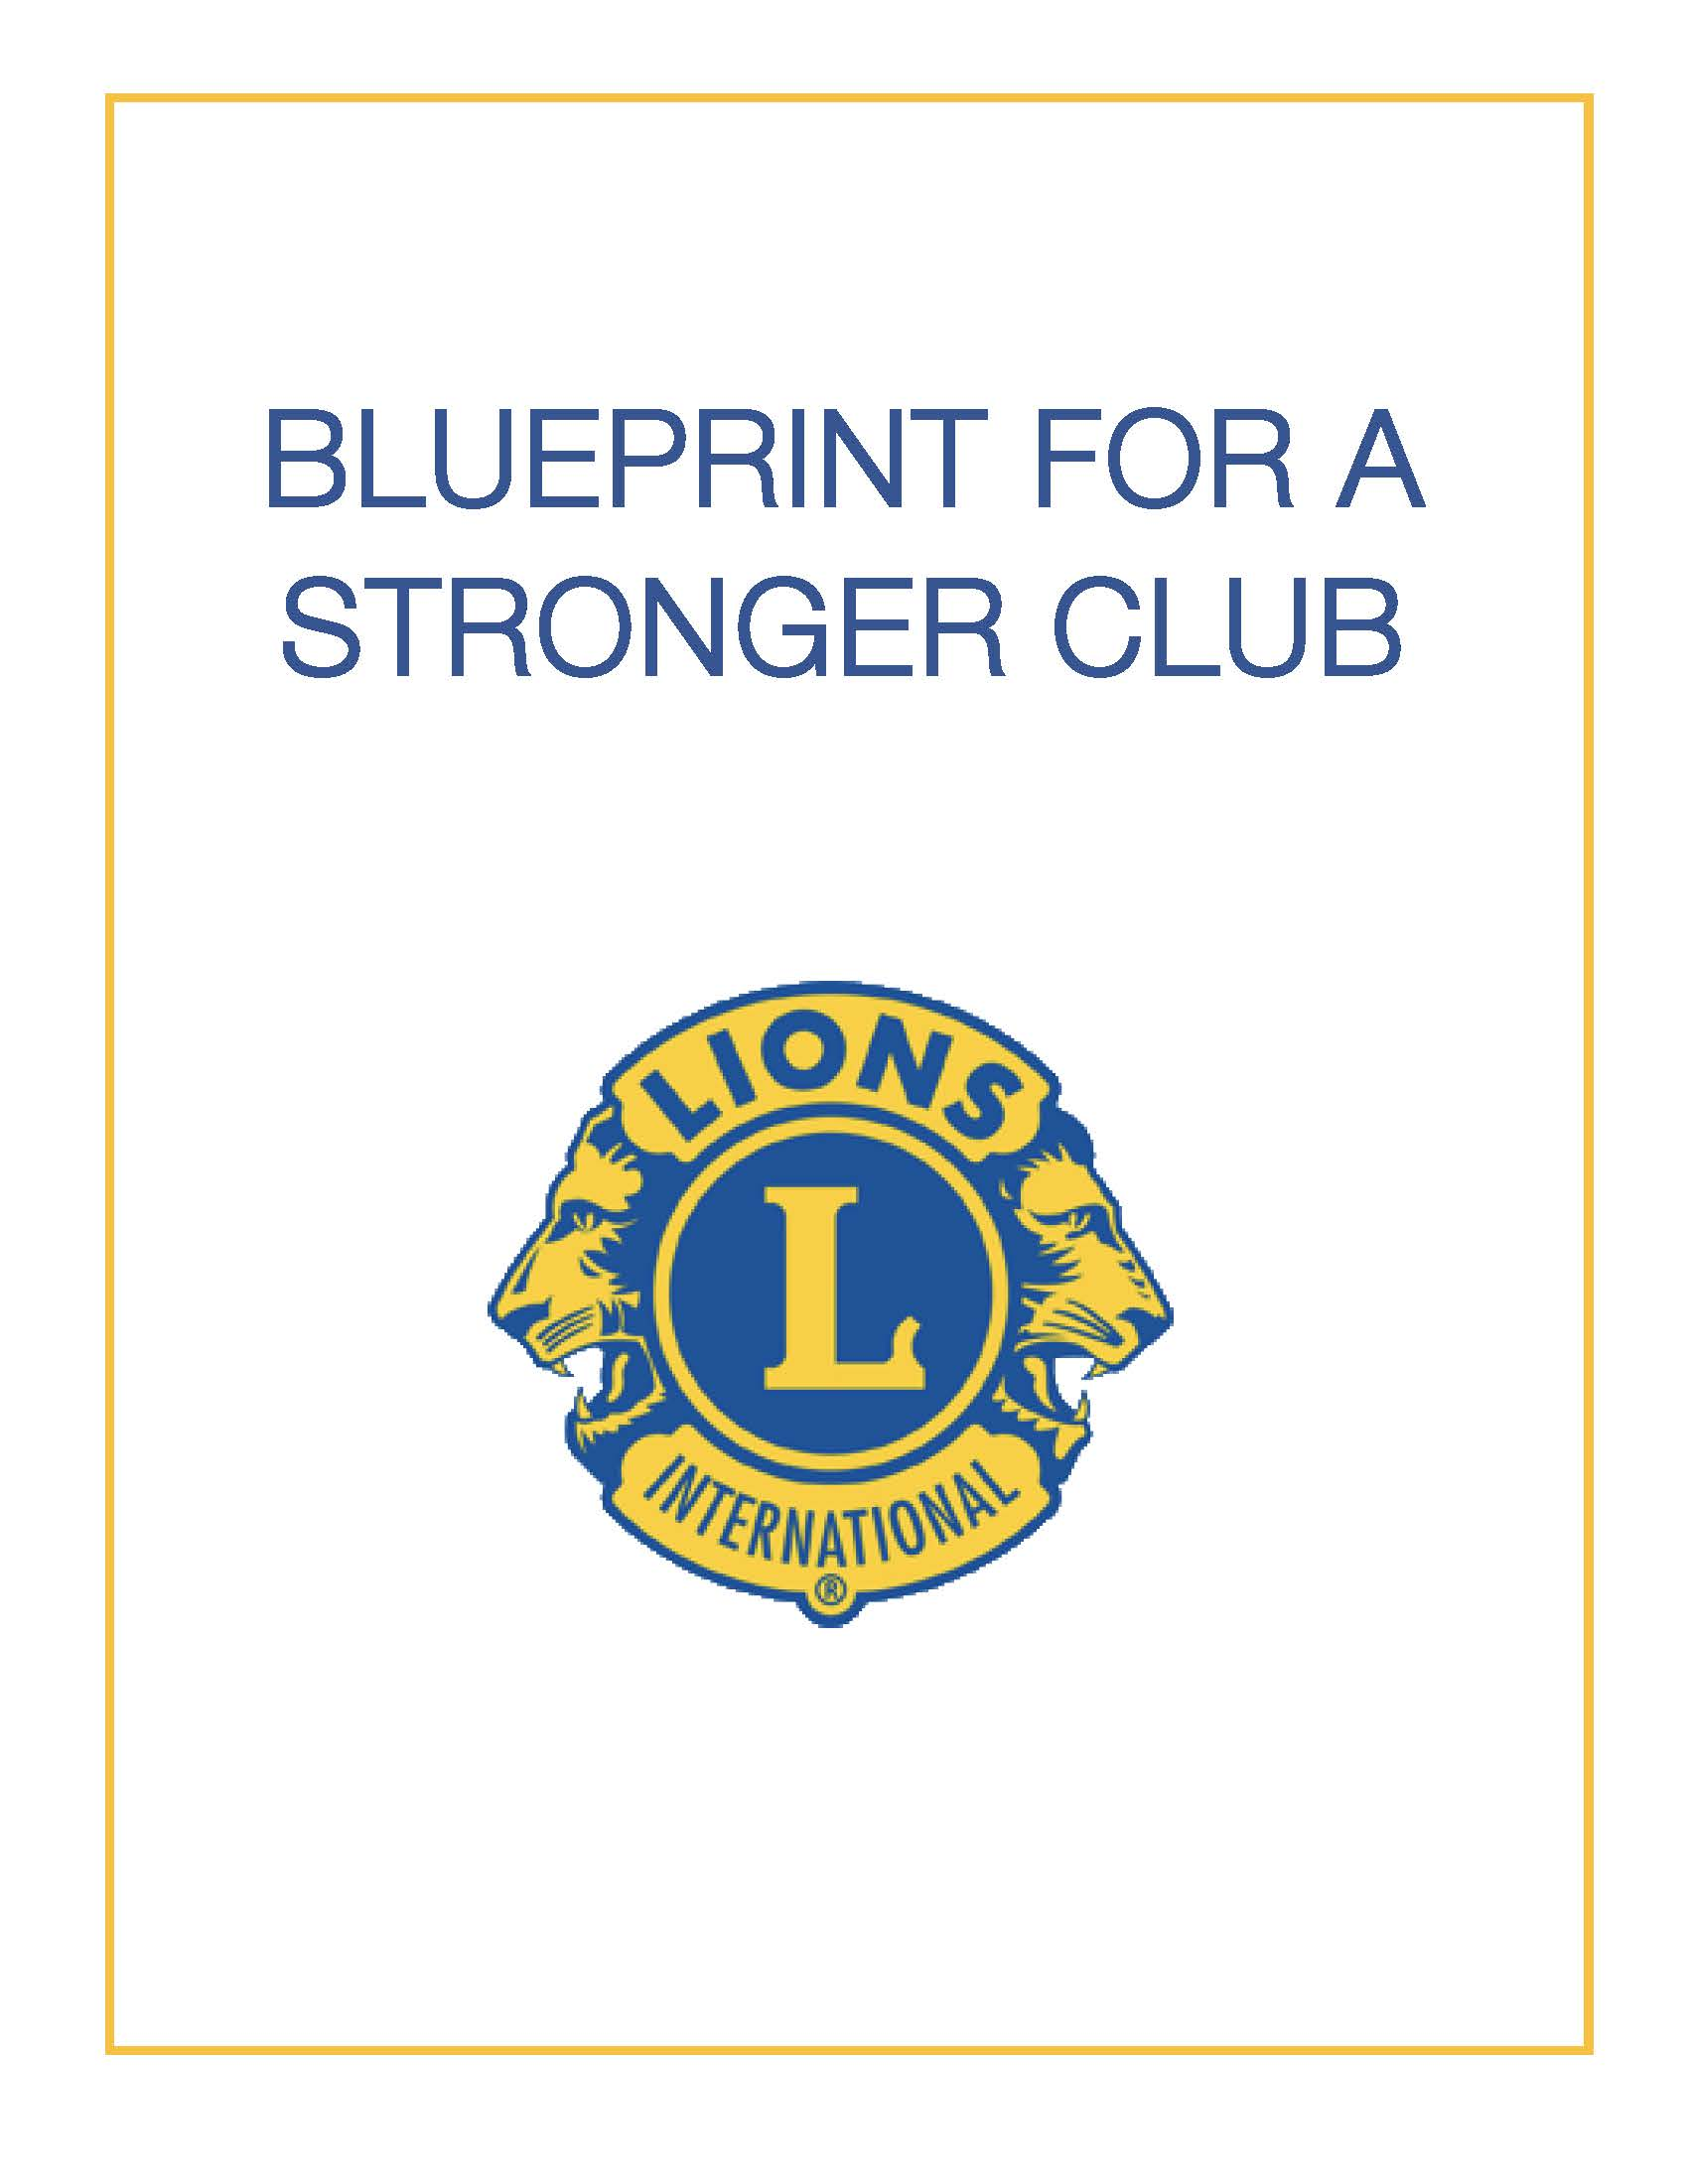 Link to Blueprint for a Stronger Club